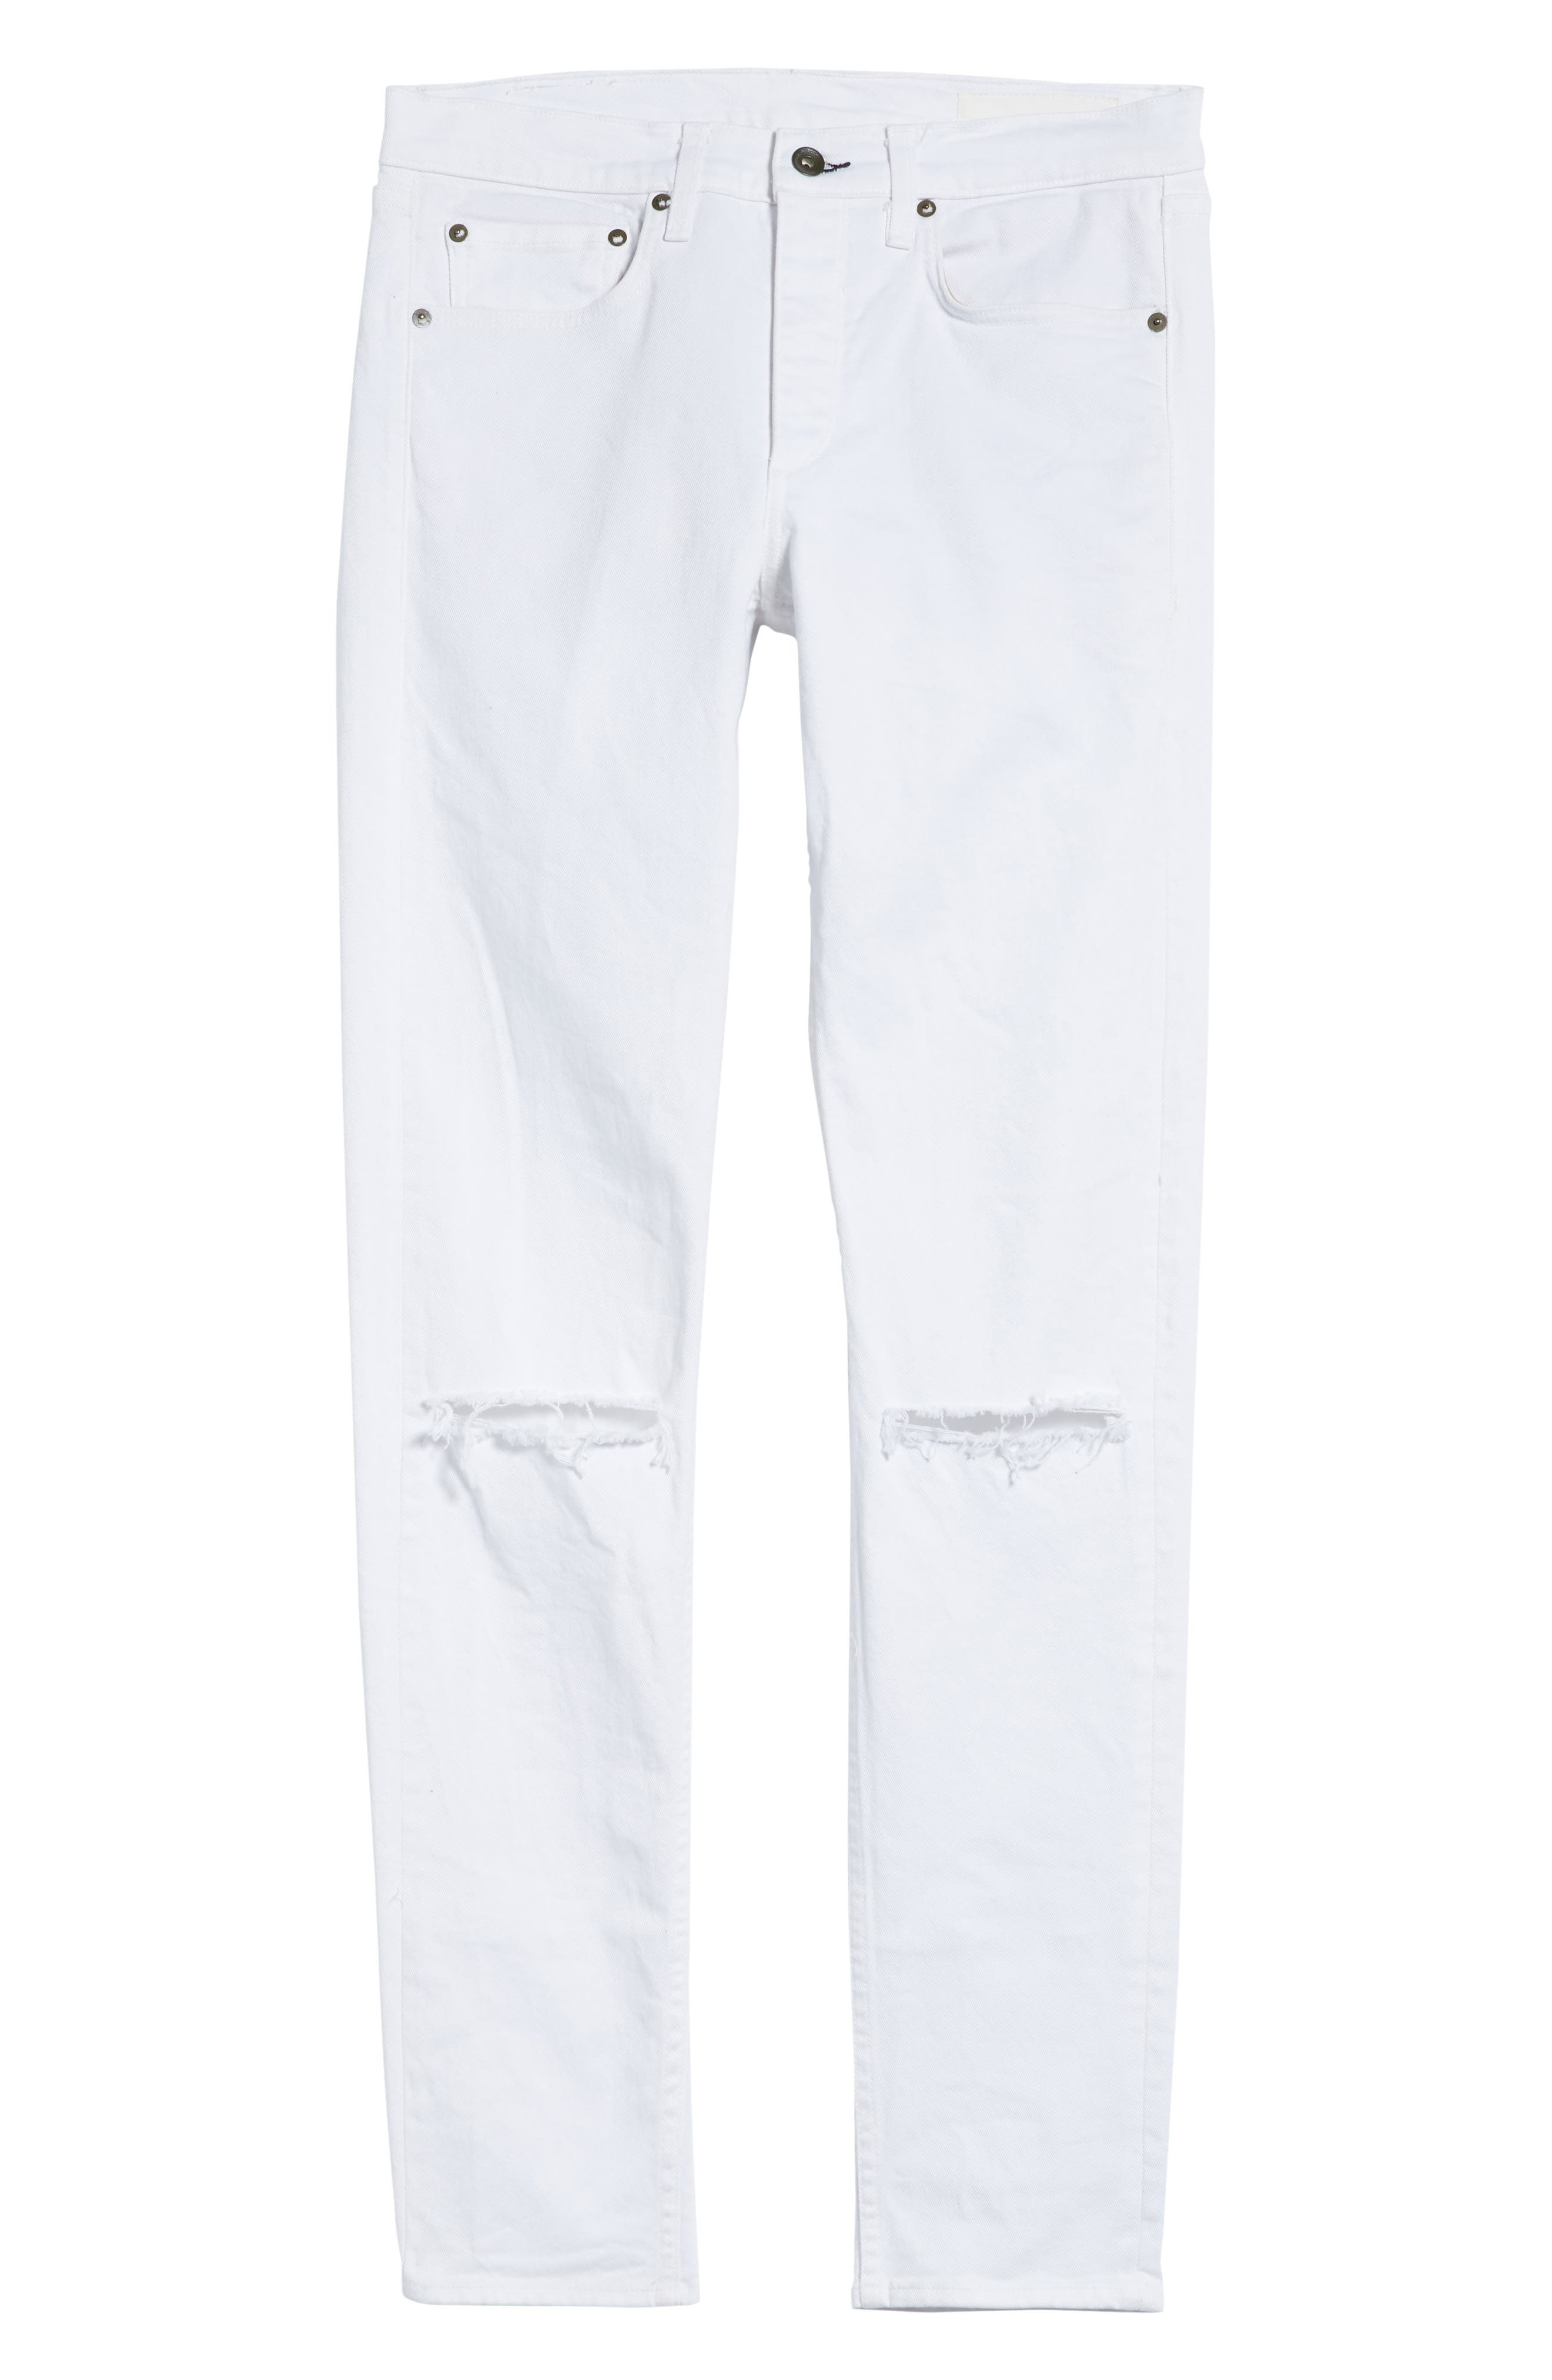 Fit 1 Skinny Fit Jeans,                             Alternate thumbnail 6, color,                             White W/ Holes